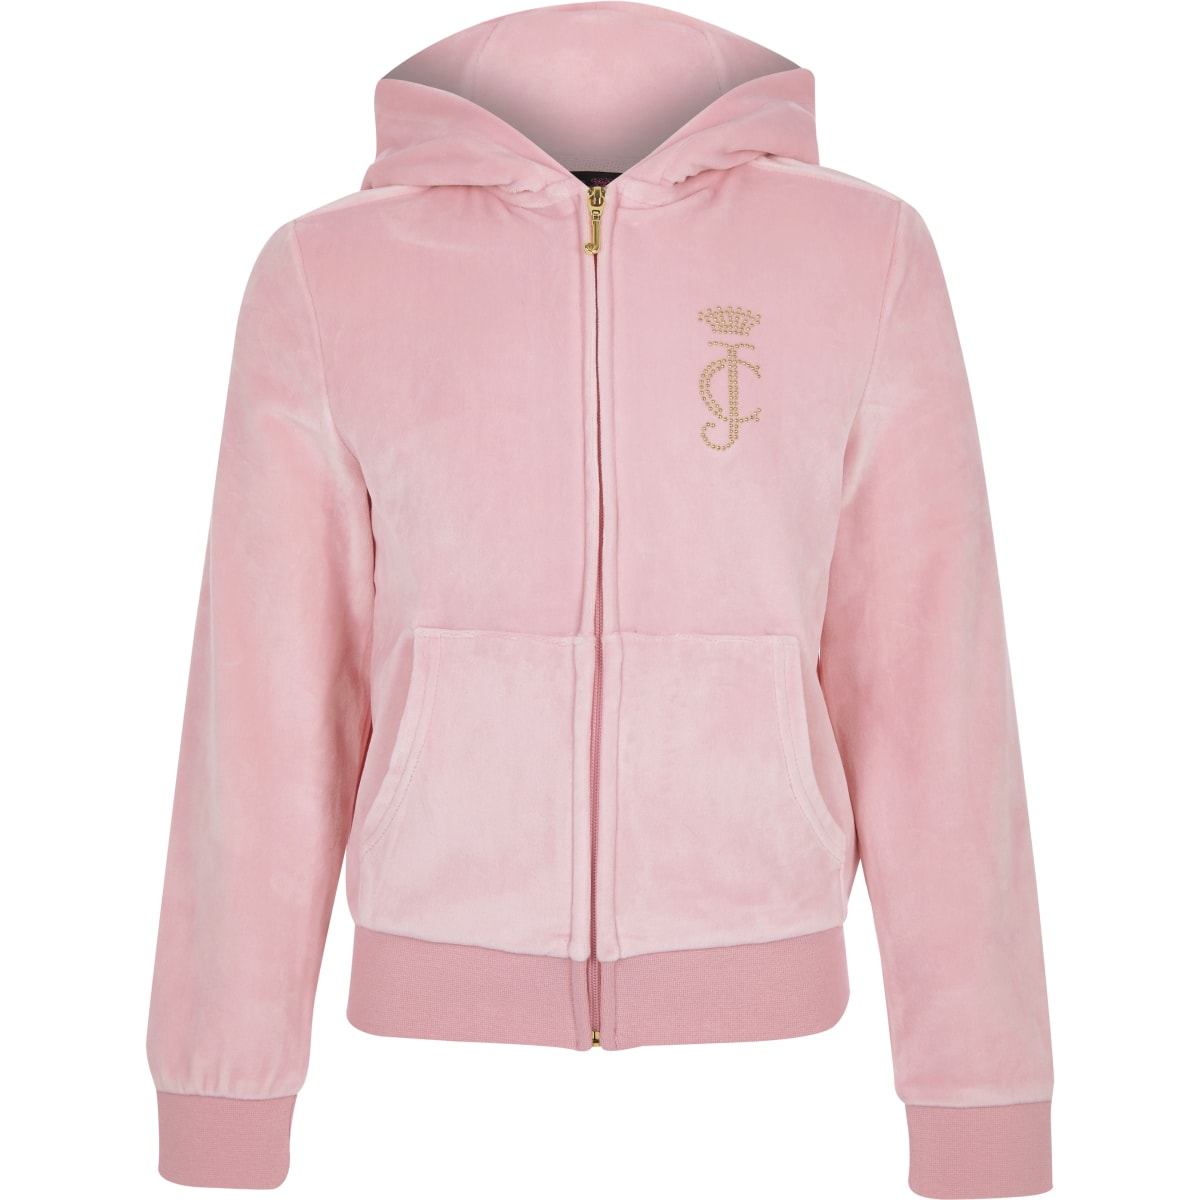 Girls Juicy Couture light pink track top